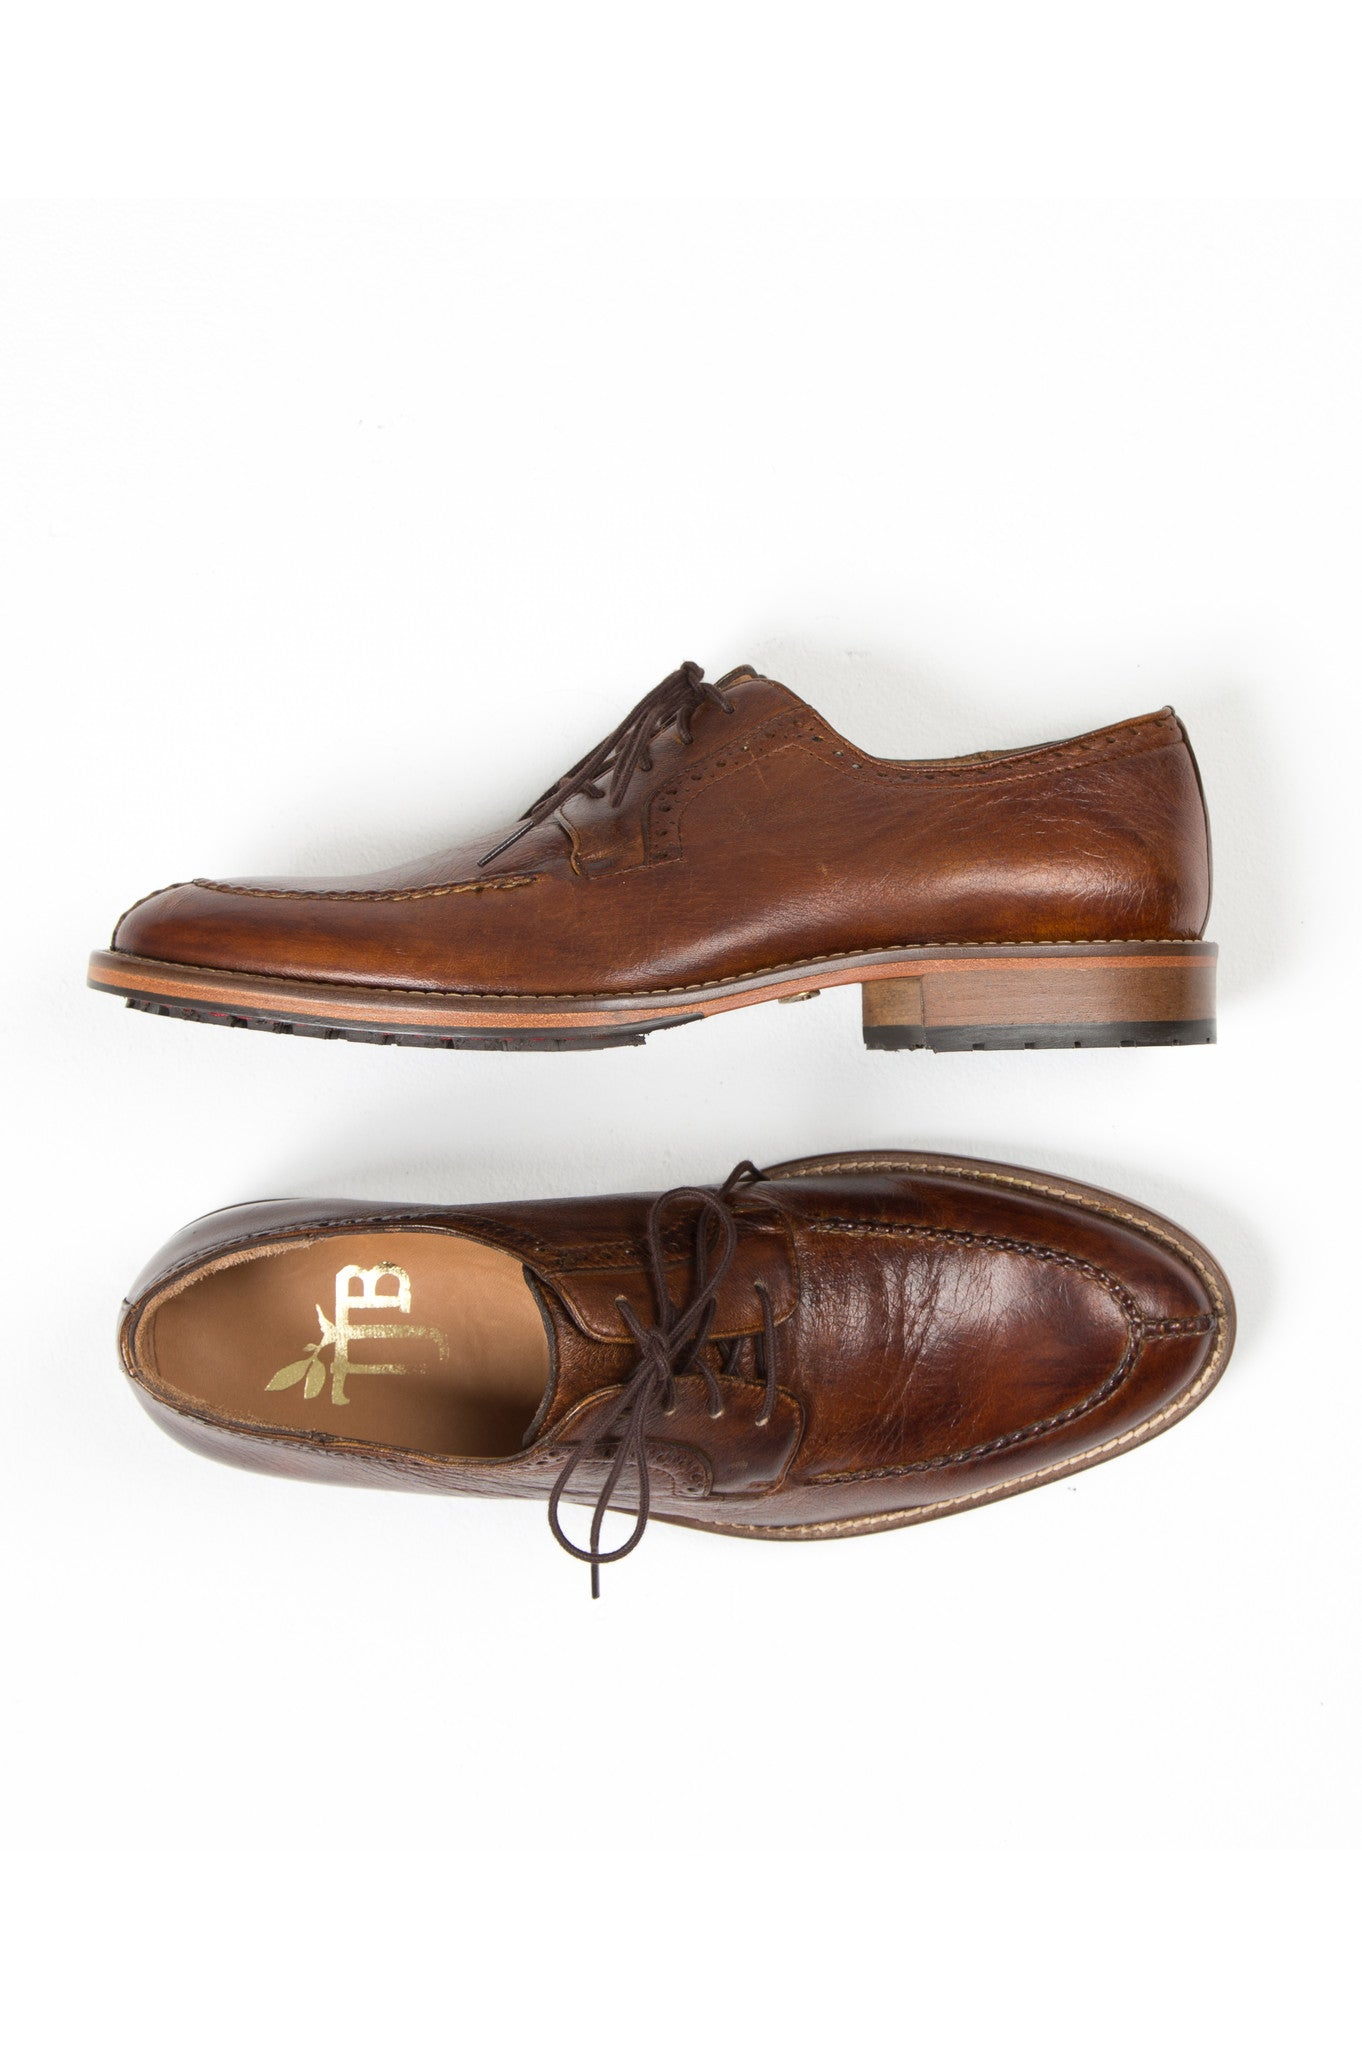 brown lace up dress shoes for men